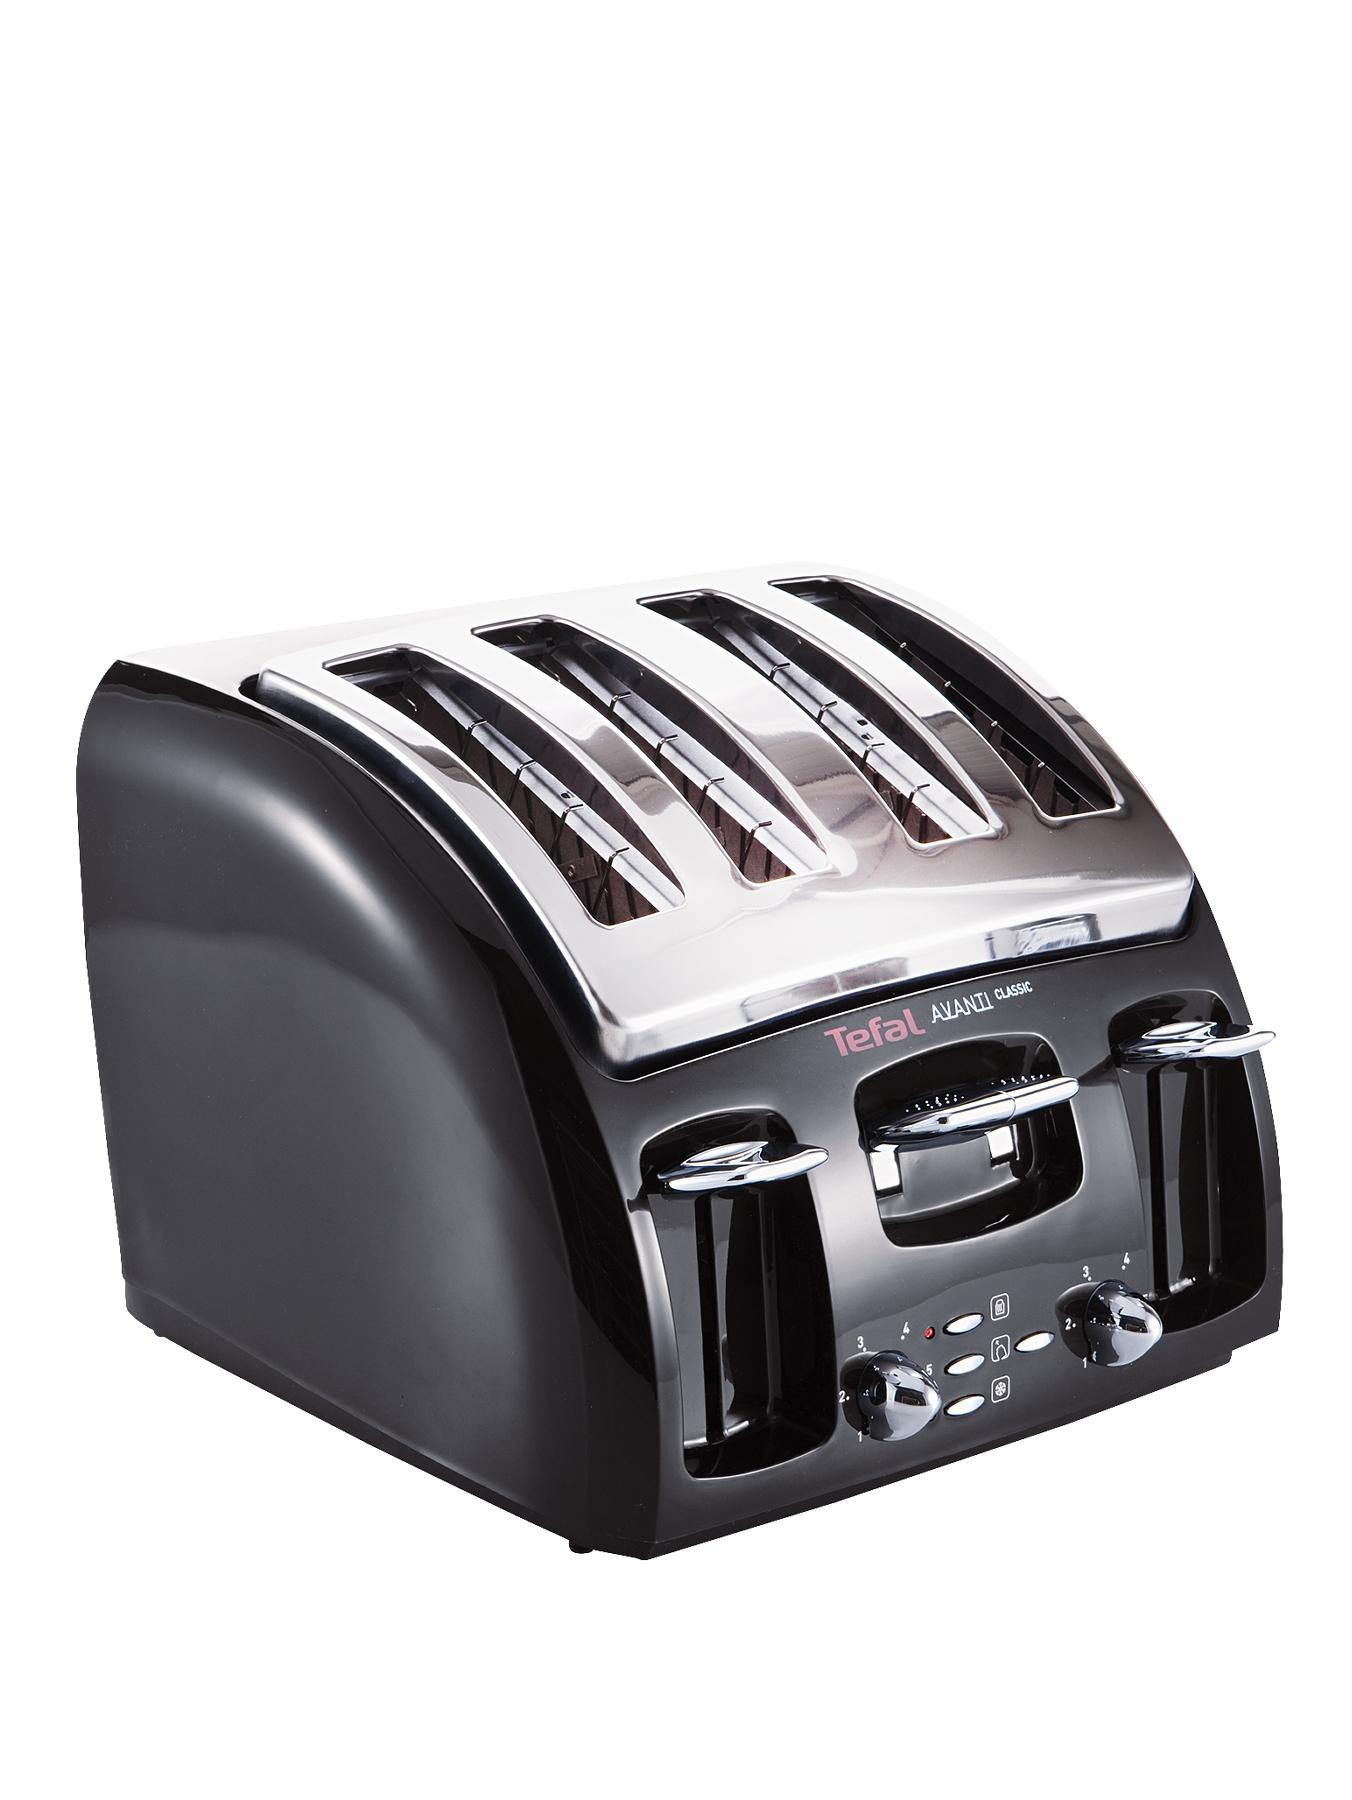 532718 Avanti 4 Slice Toaster  Black